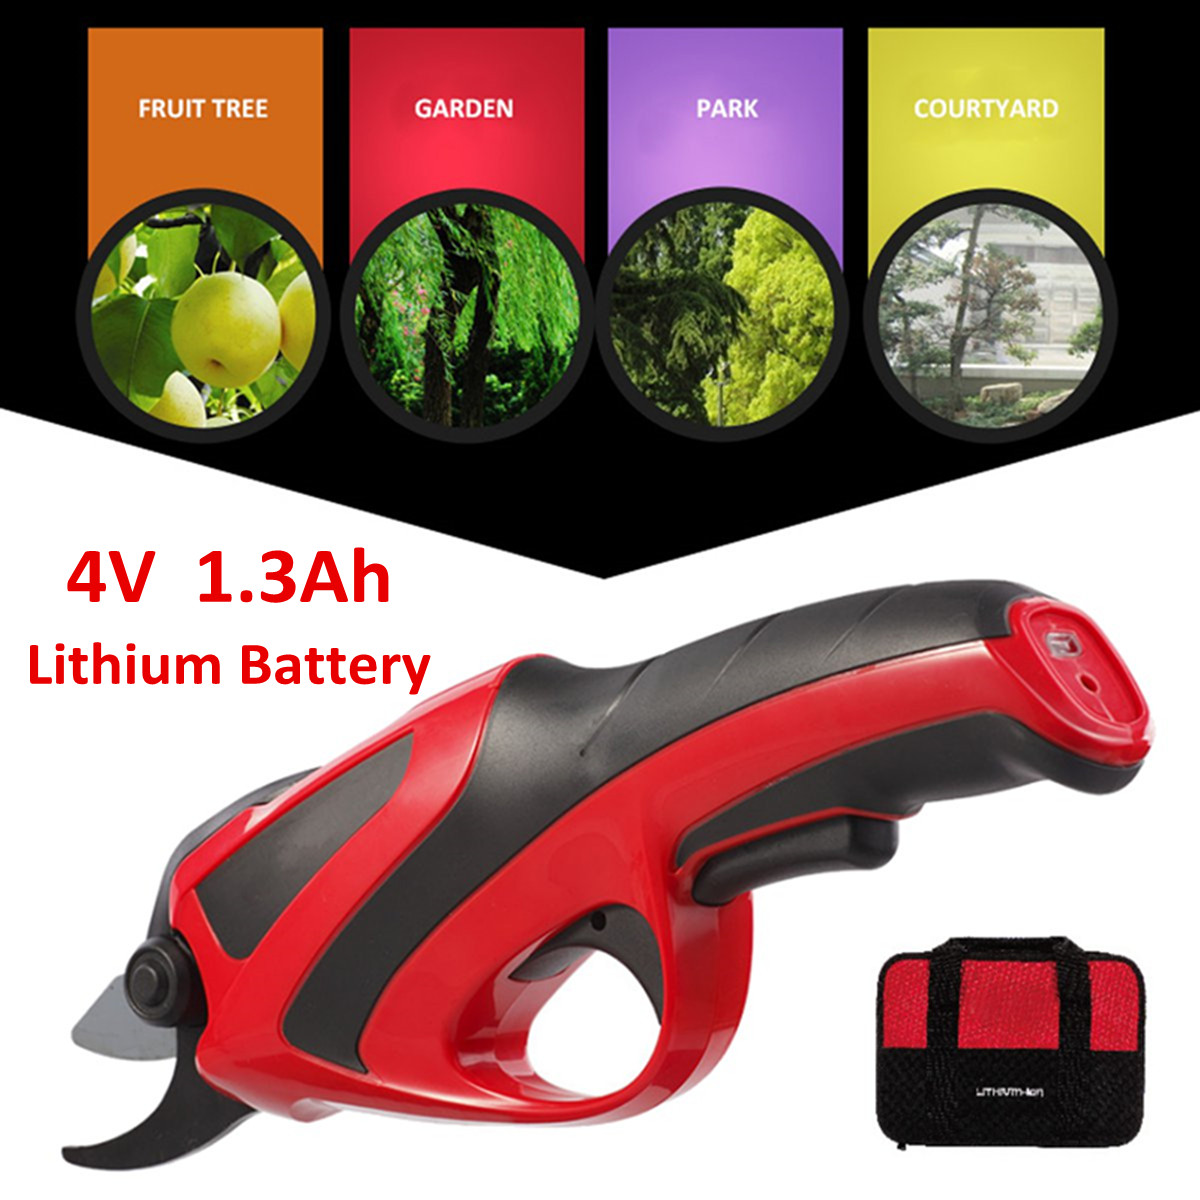 220-240V Rechargeable Electric 3.6V Battery Cordless Secateur Branch Cutter Pruning Shears